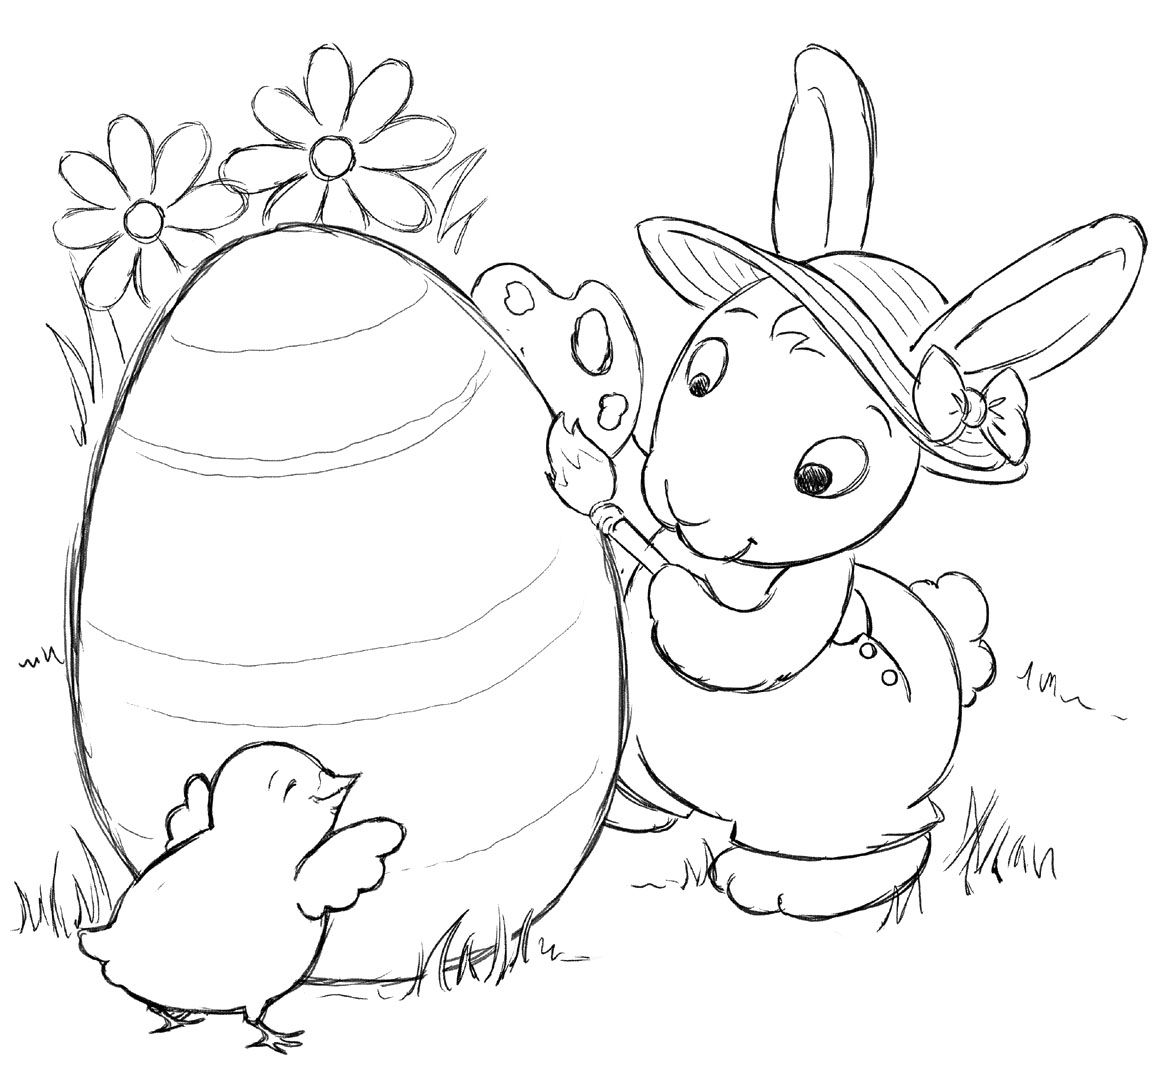 Bunny Cute Big Easter Egg Decorating Coloring Pages Kids